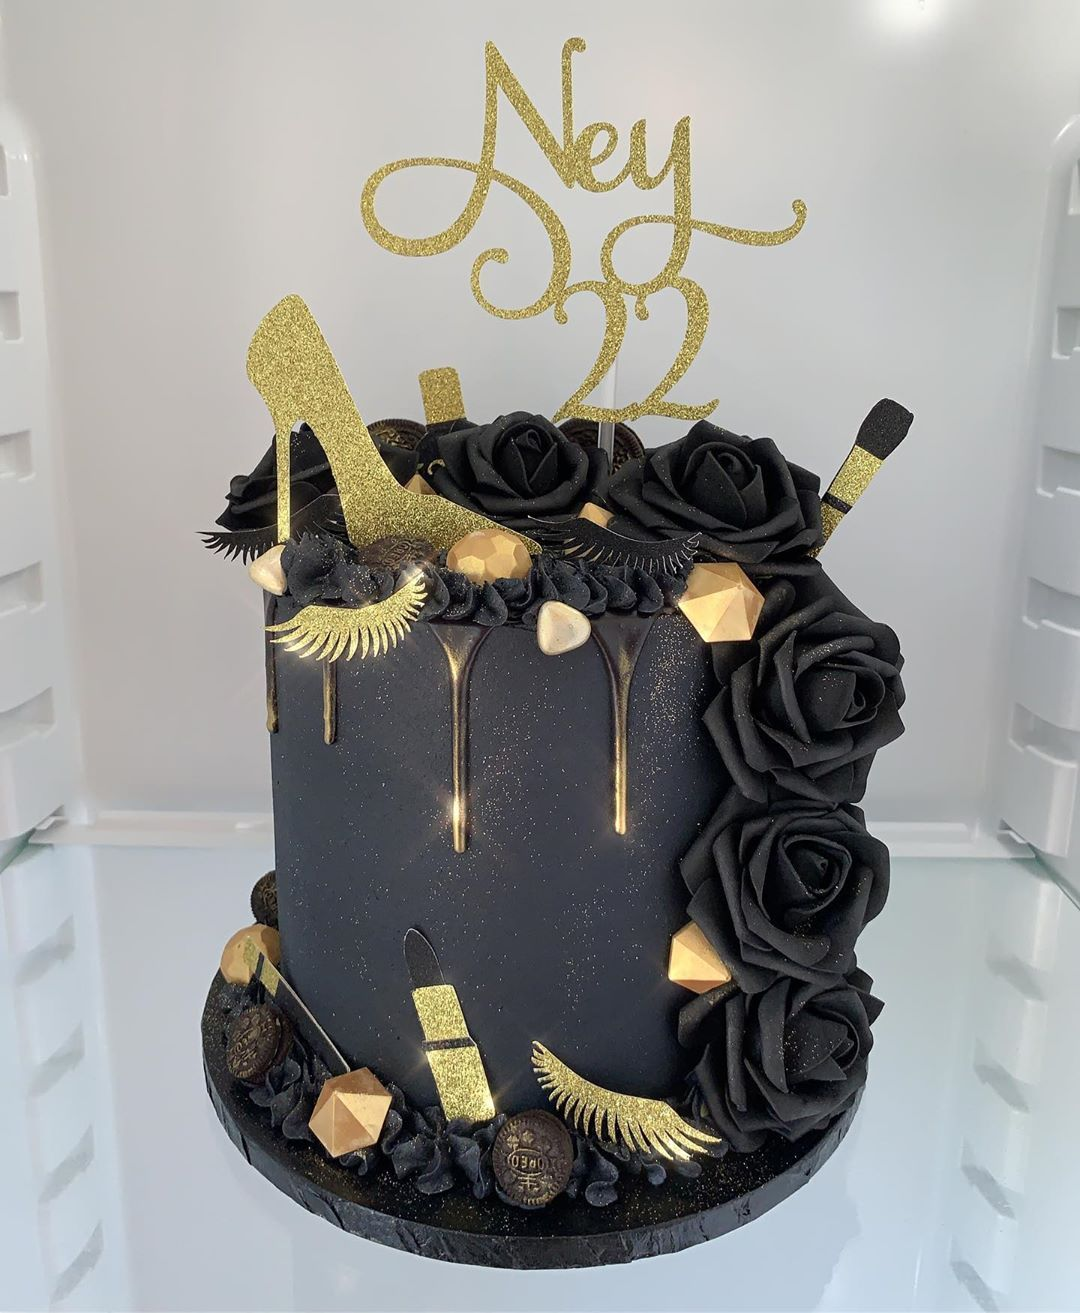 """Maria West on Instagram """"Black and gold cake for Ney who"""